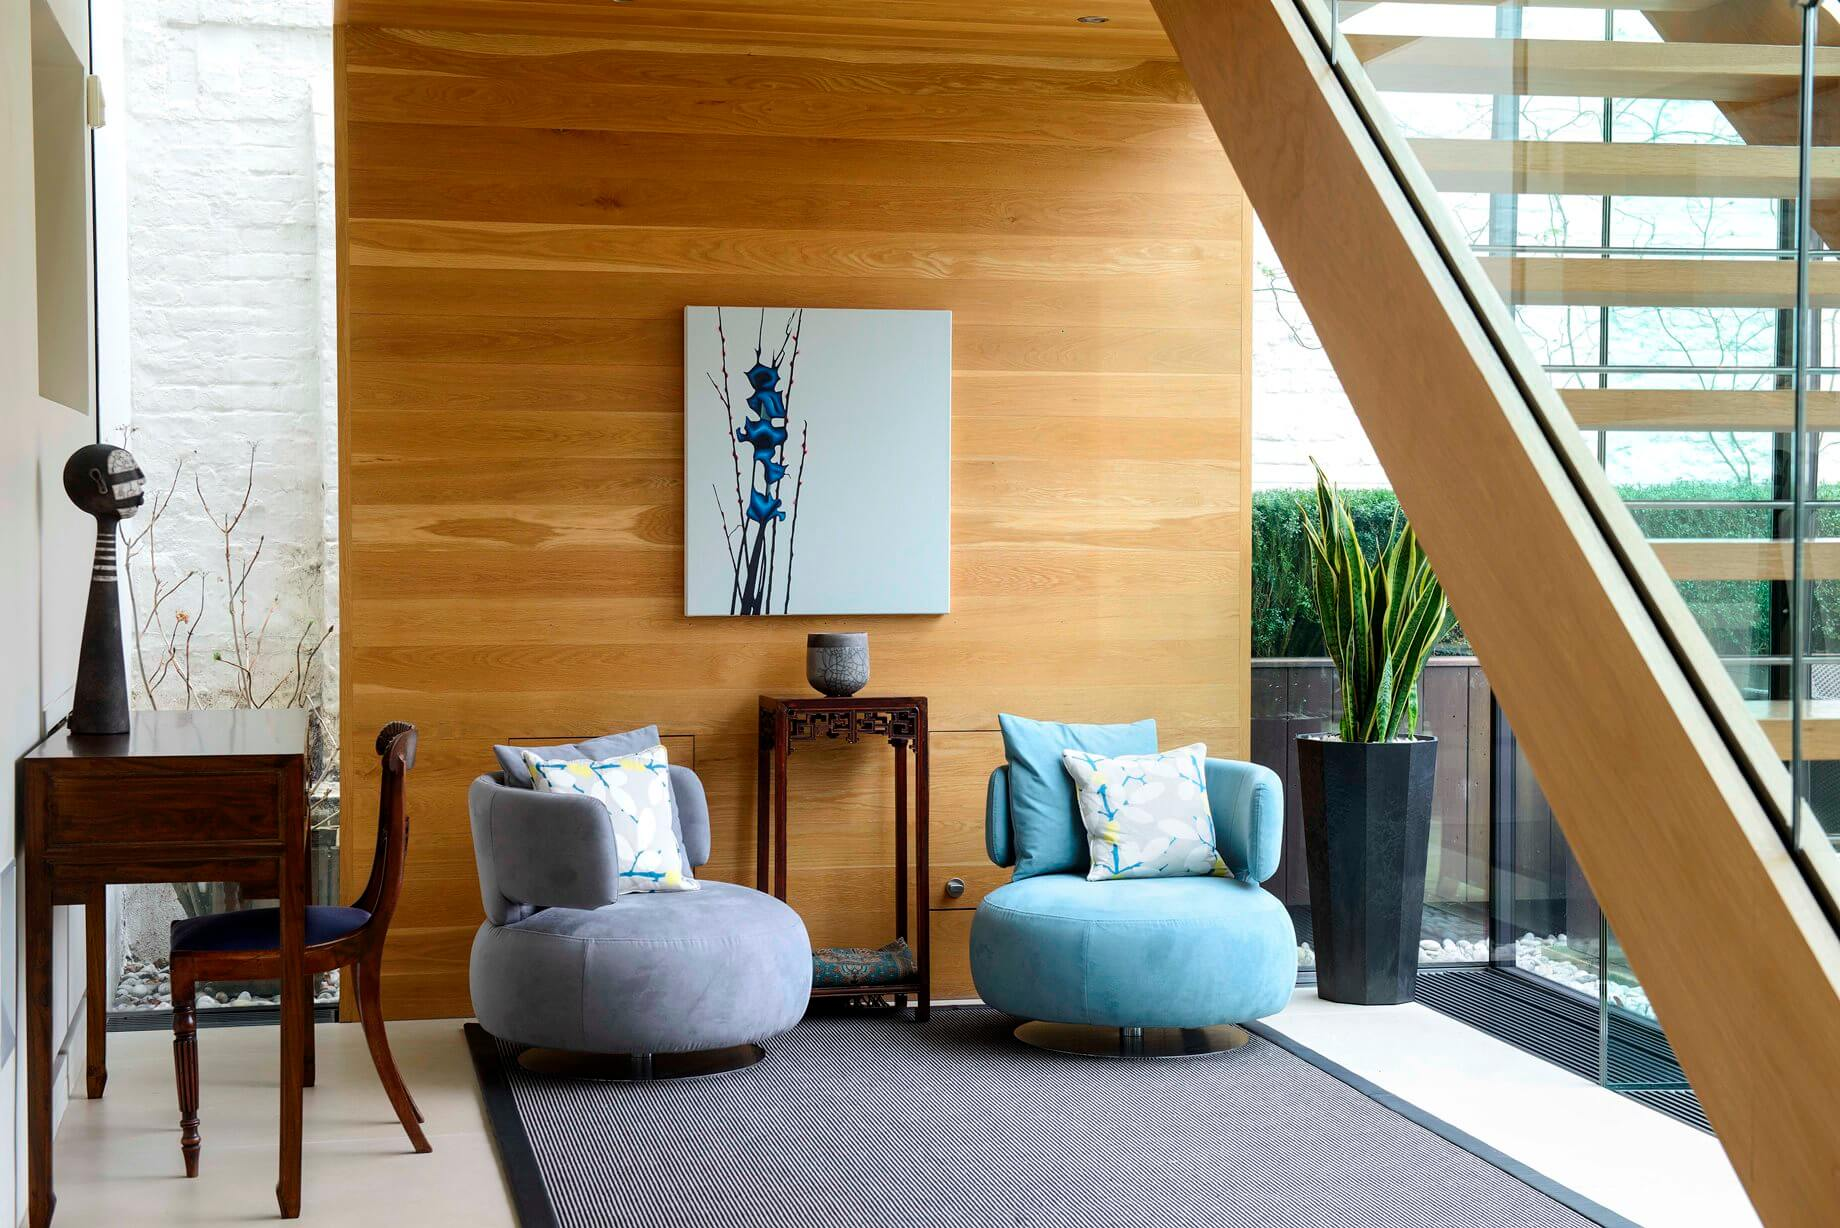 Alex Cotton Interiors - Barnes Family Home South West London